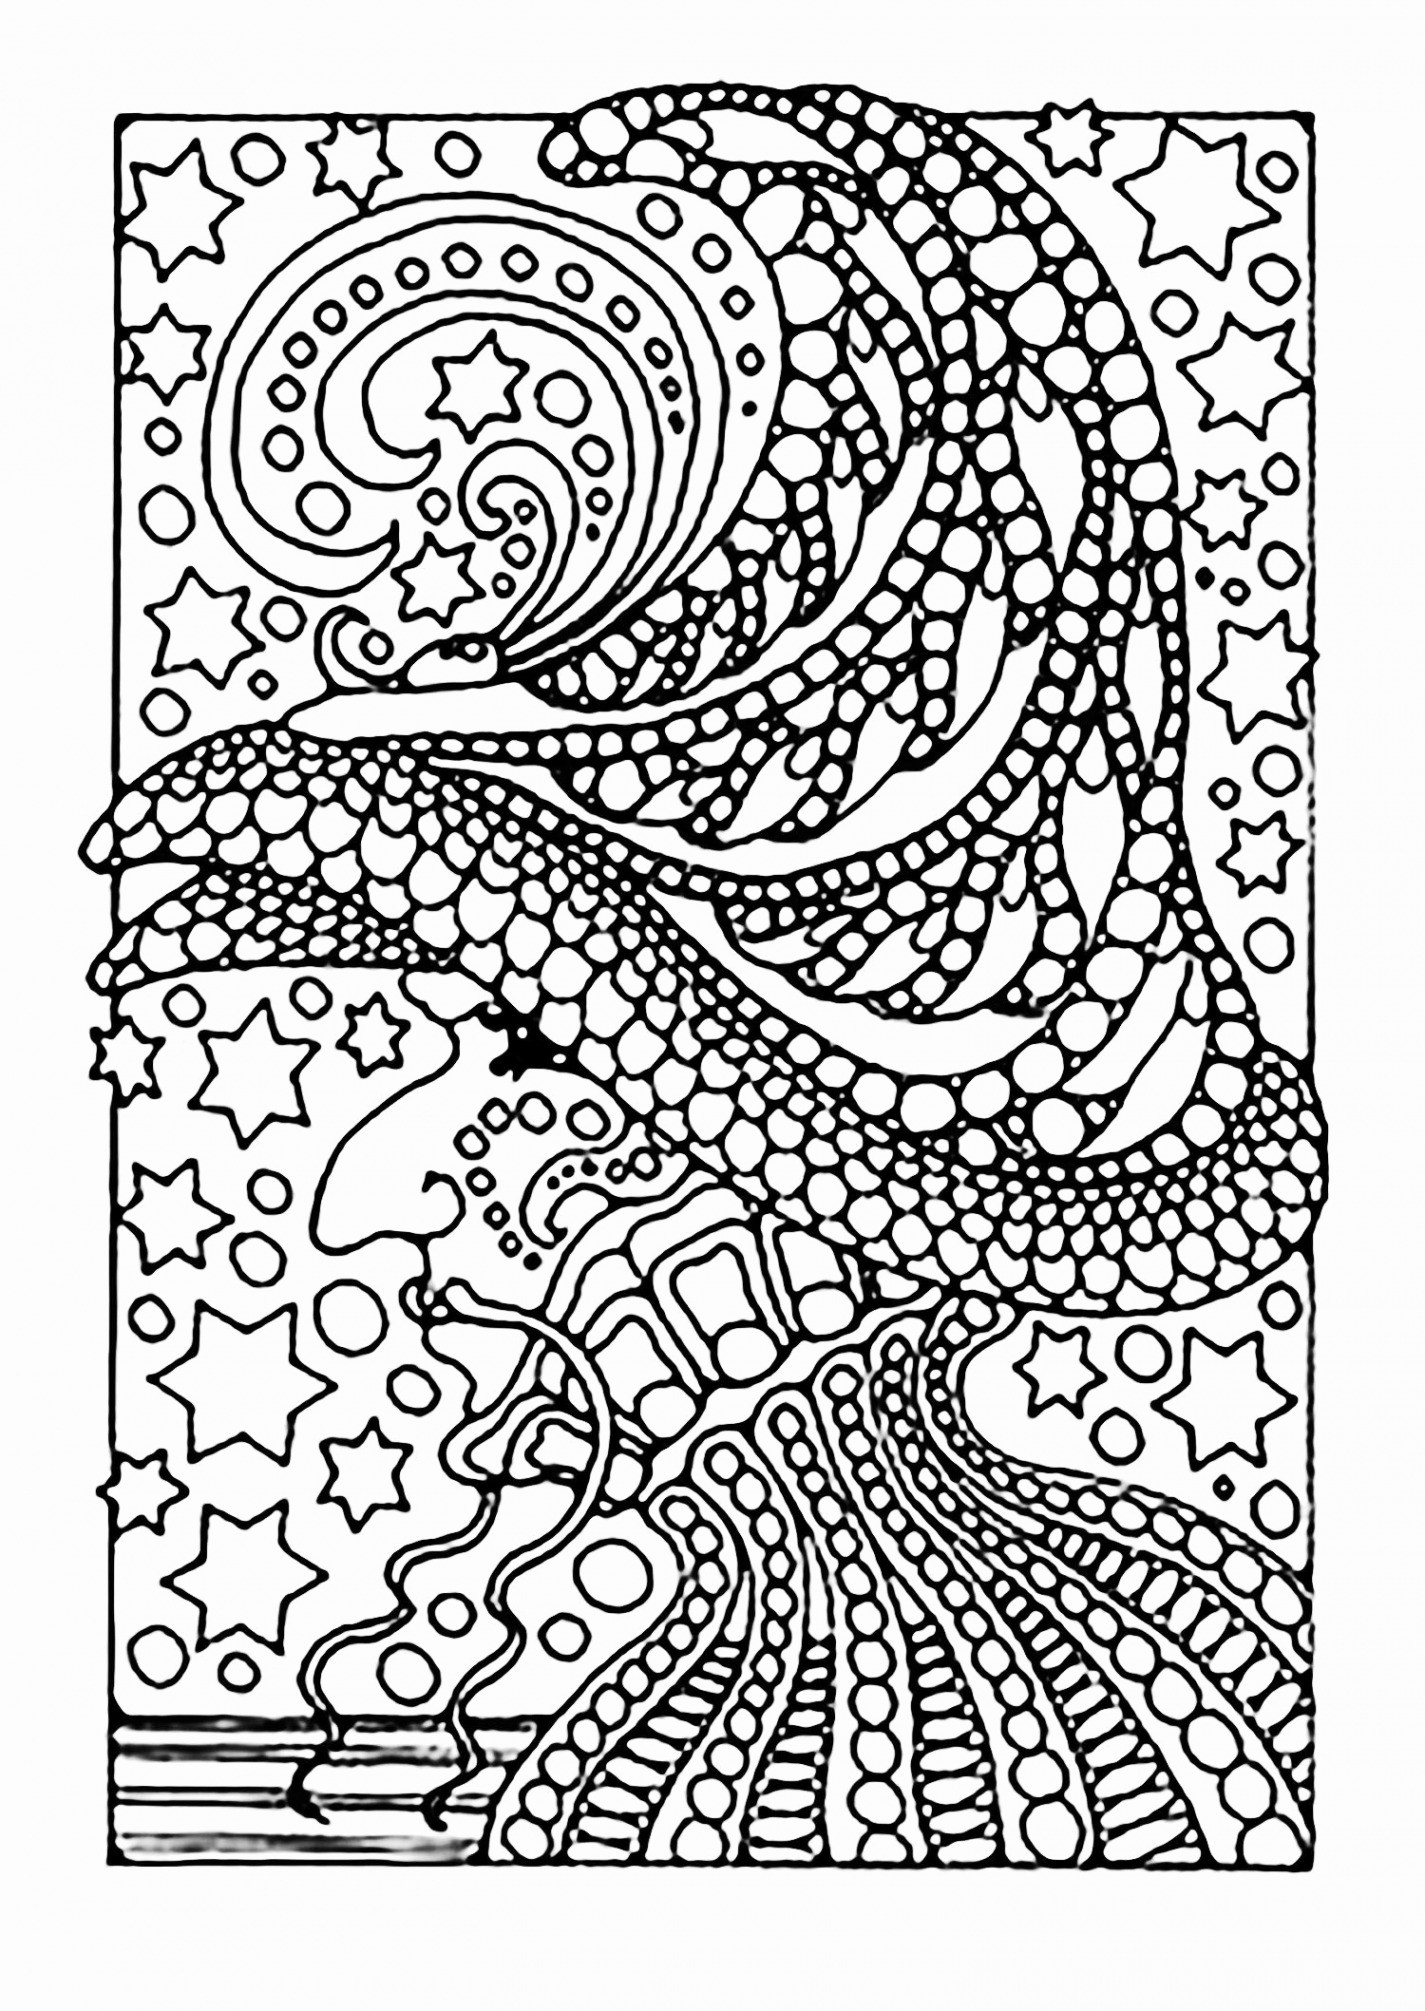 Christmas Coloring Pages Cutouts With For Adults Pinterest Great Dannerchonoles